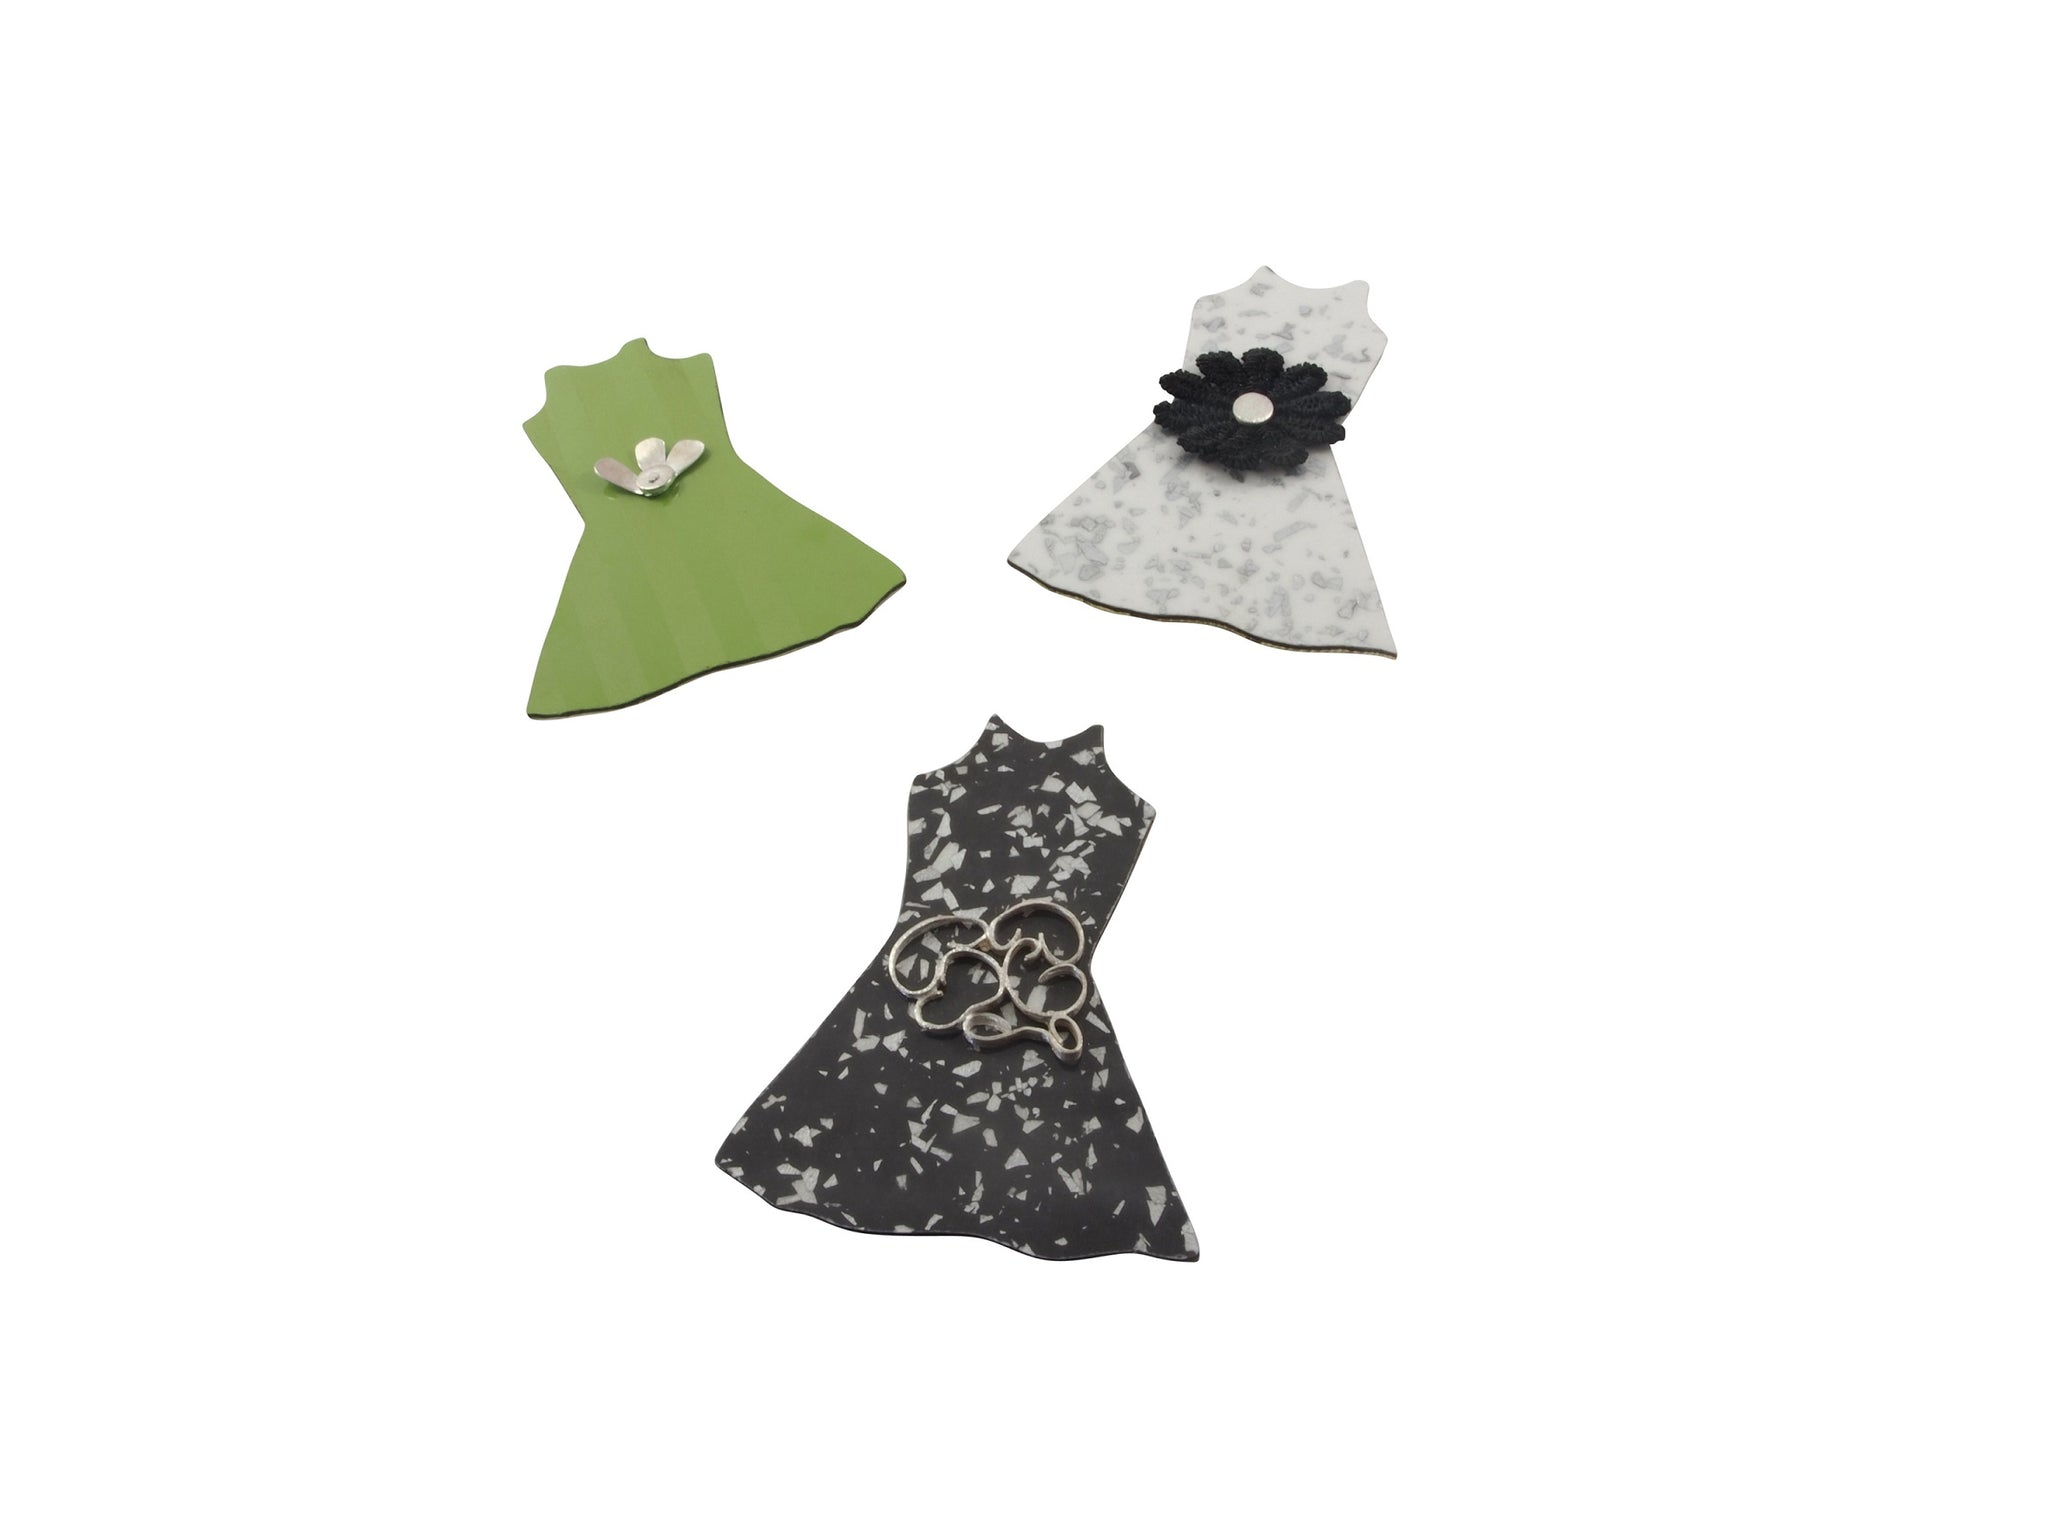 The dressmaker brooches